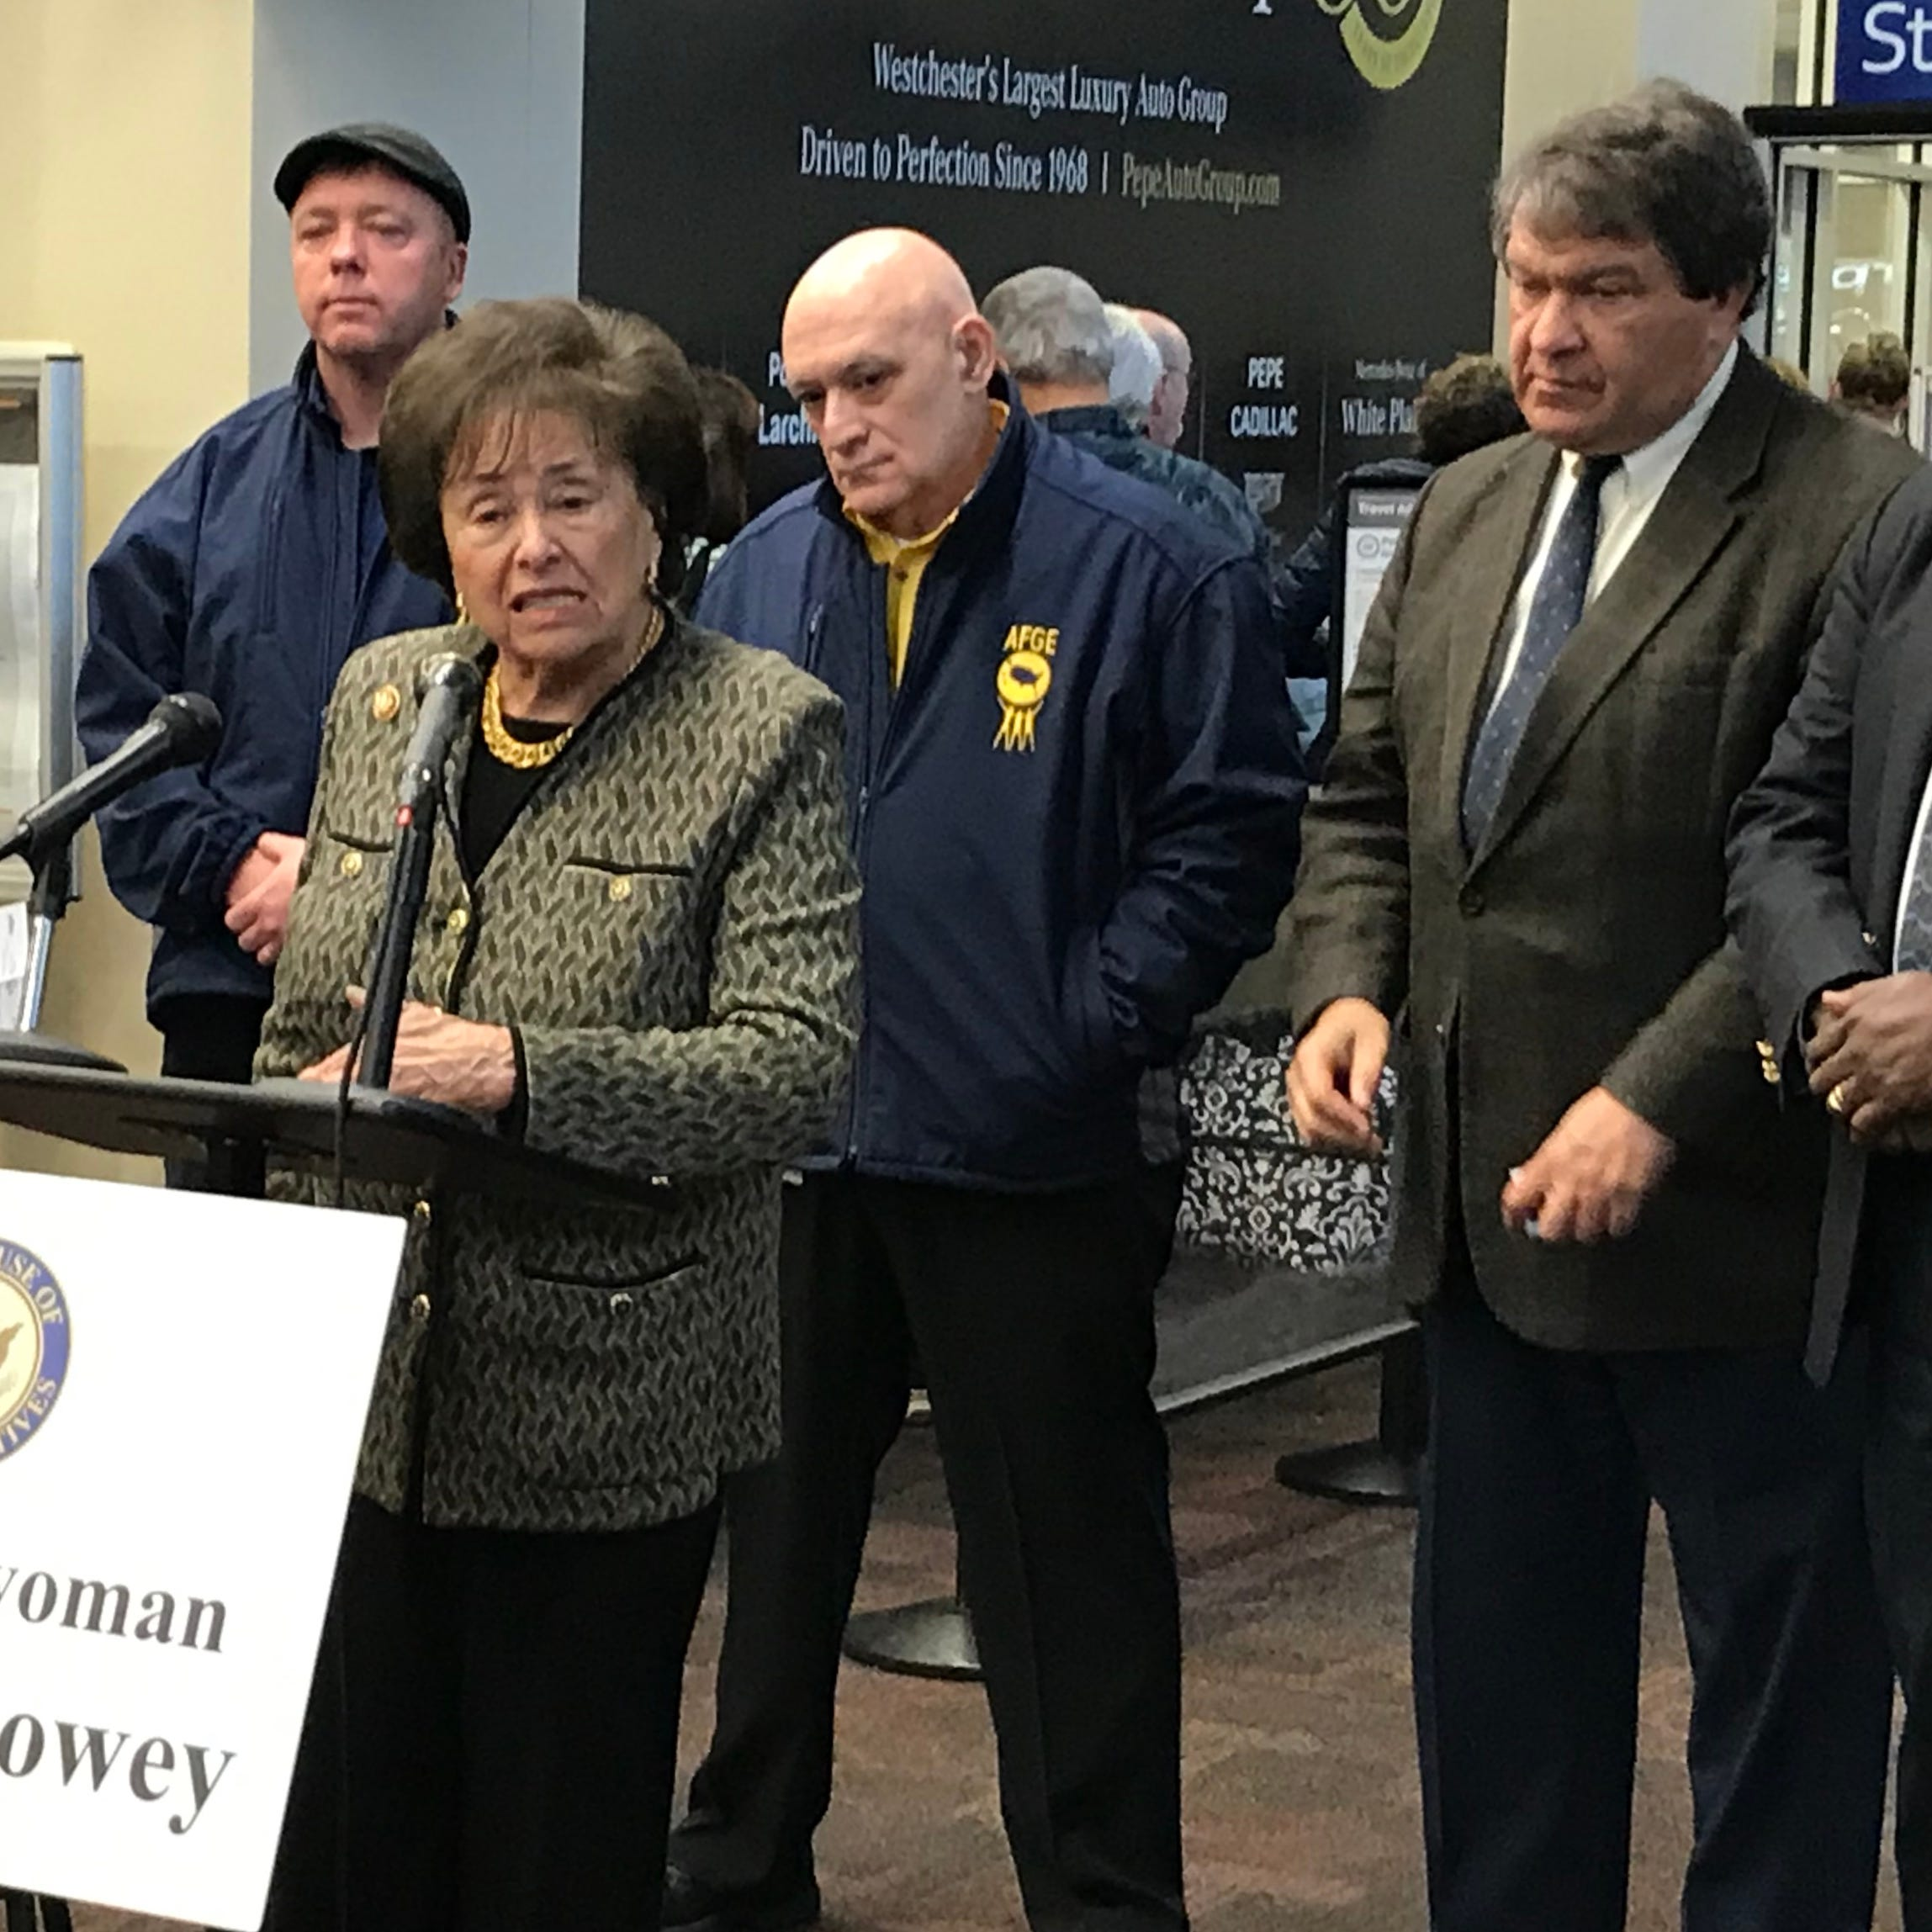 Nita Lowey: House Democrats want to end Trump shutdown and negotiate smart border security